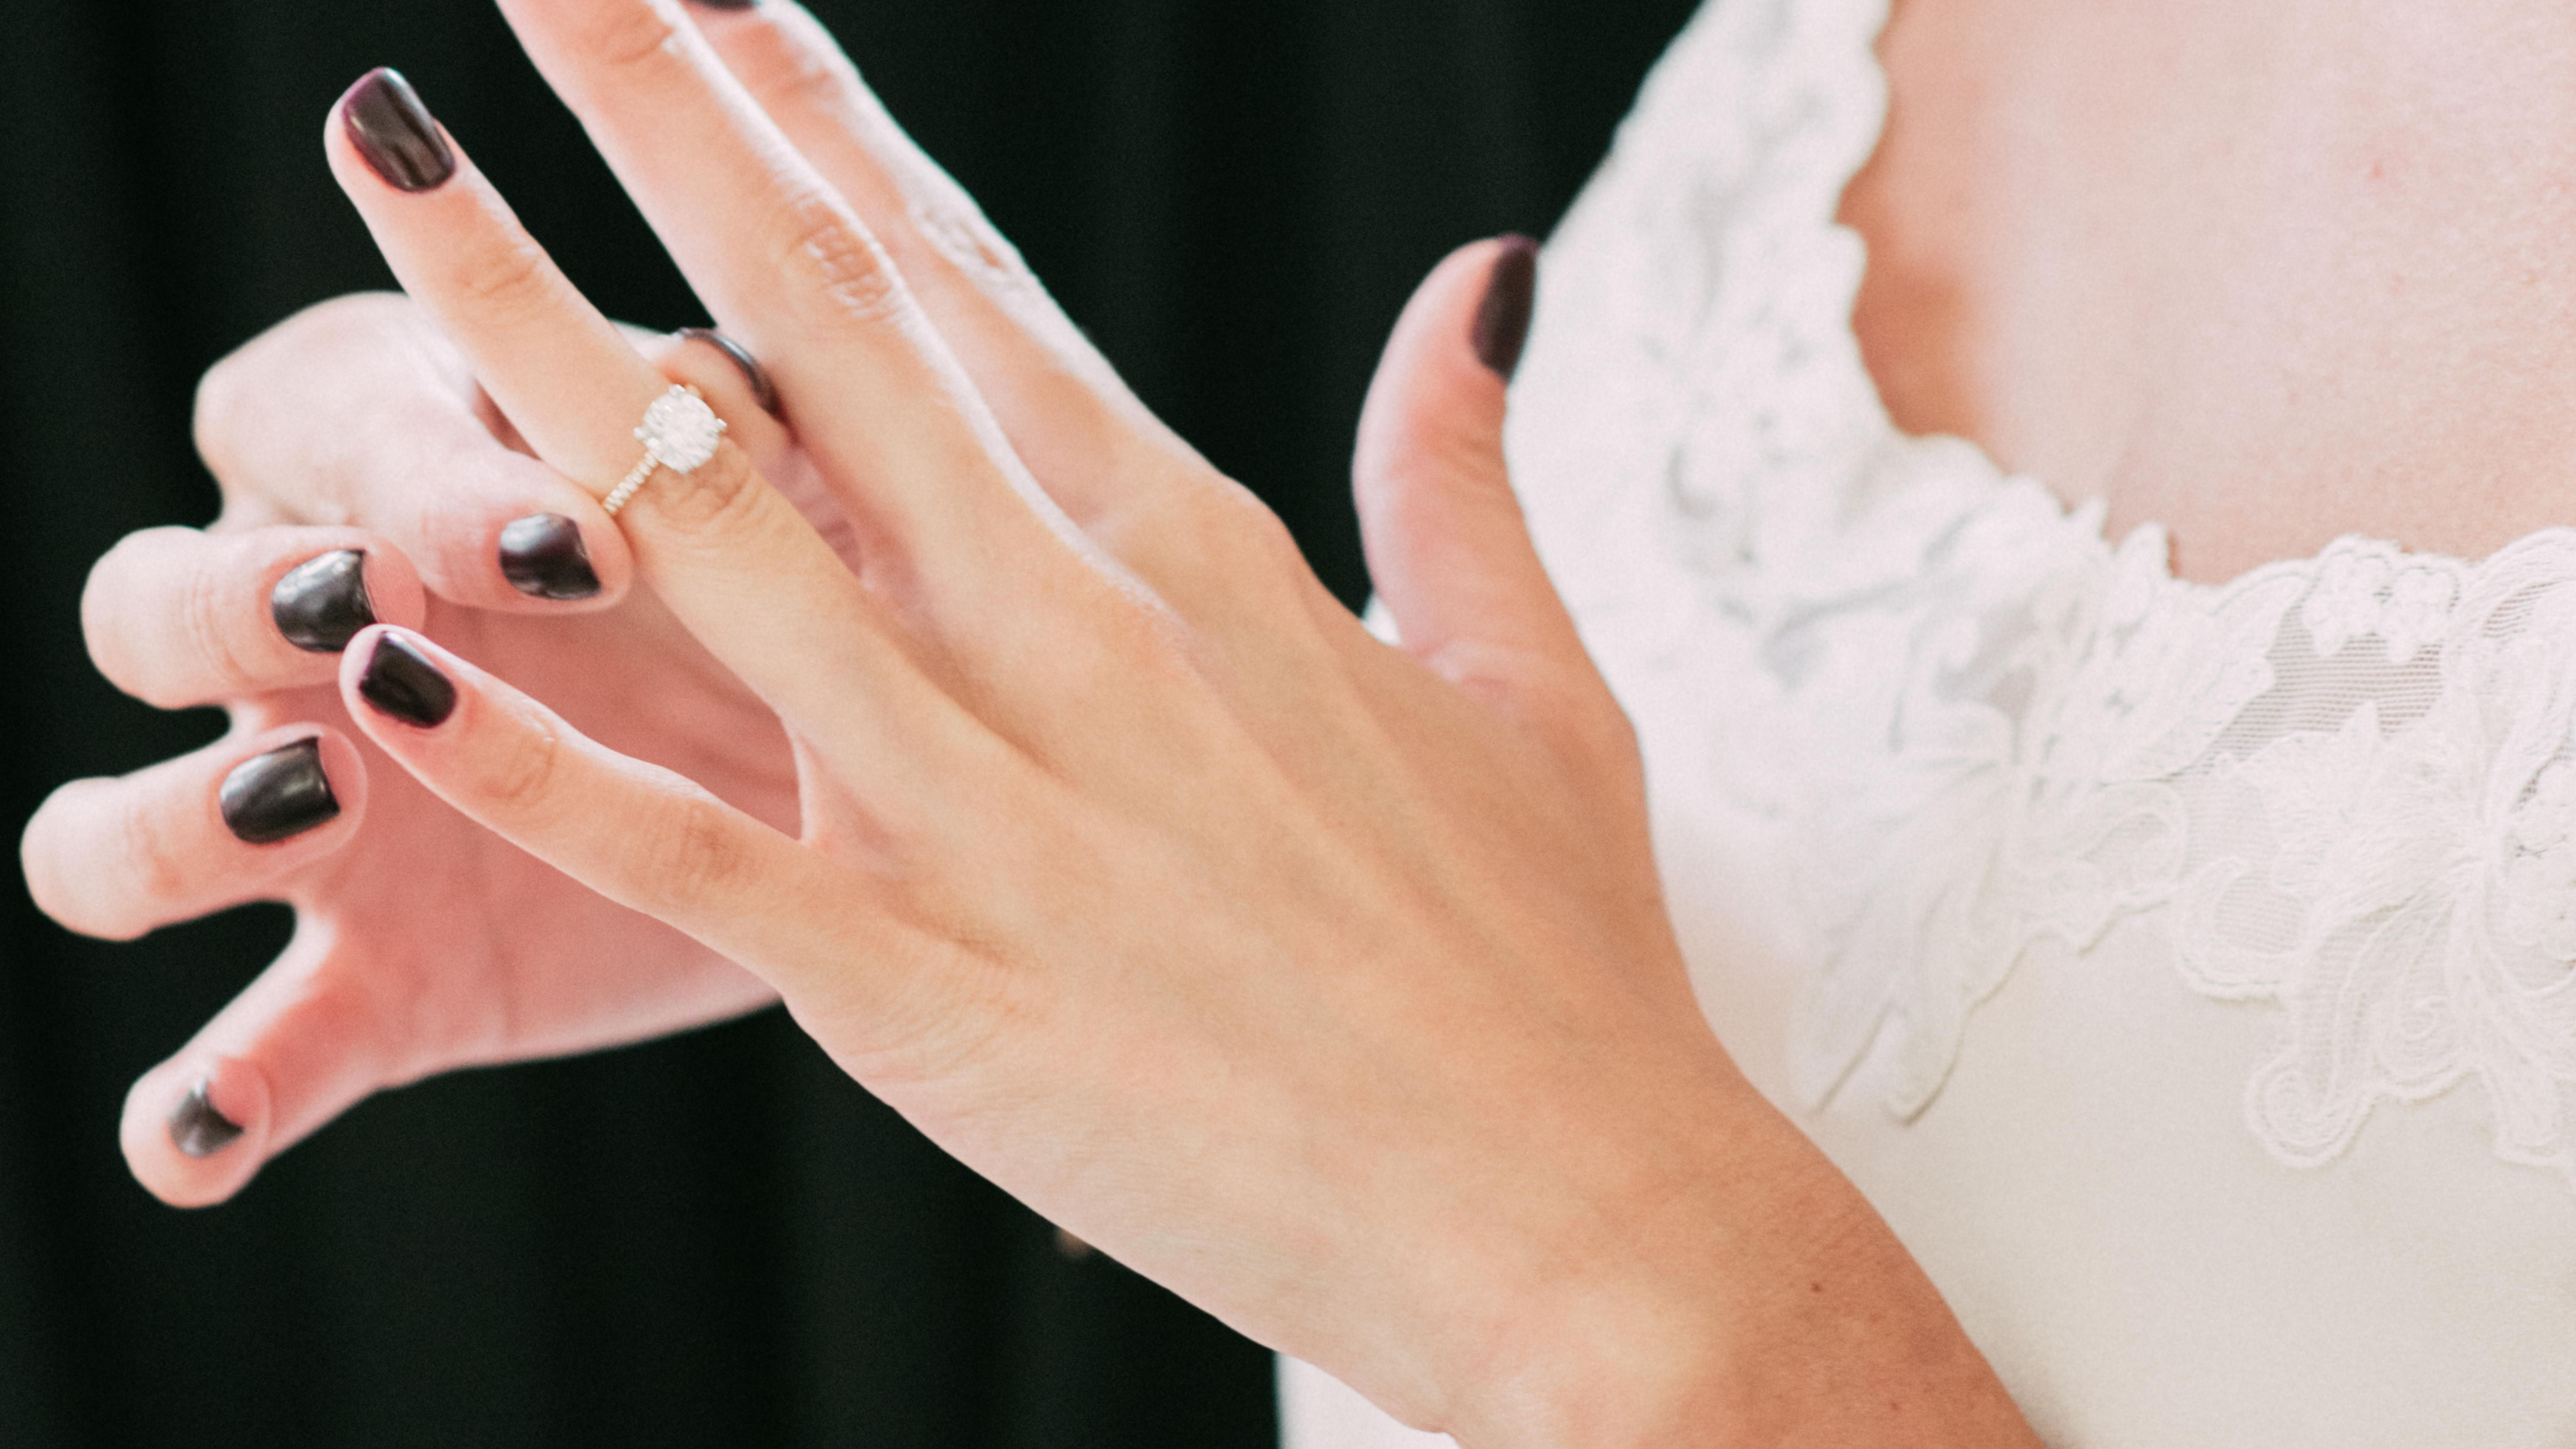 Wedding Traditions Why Is The Wedding Ring Worn On The Left Hand